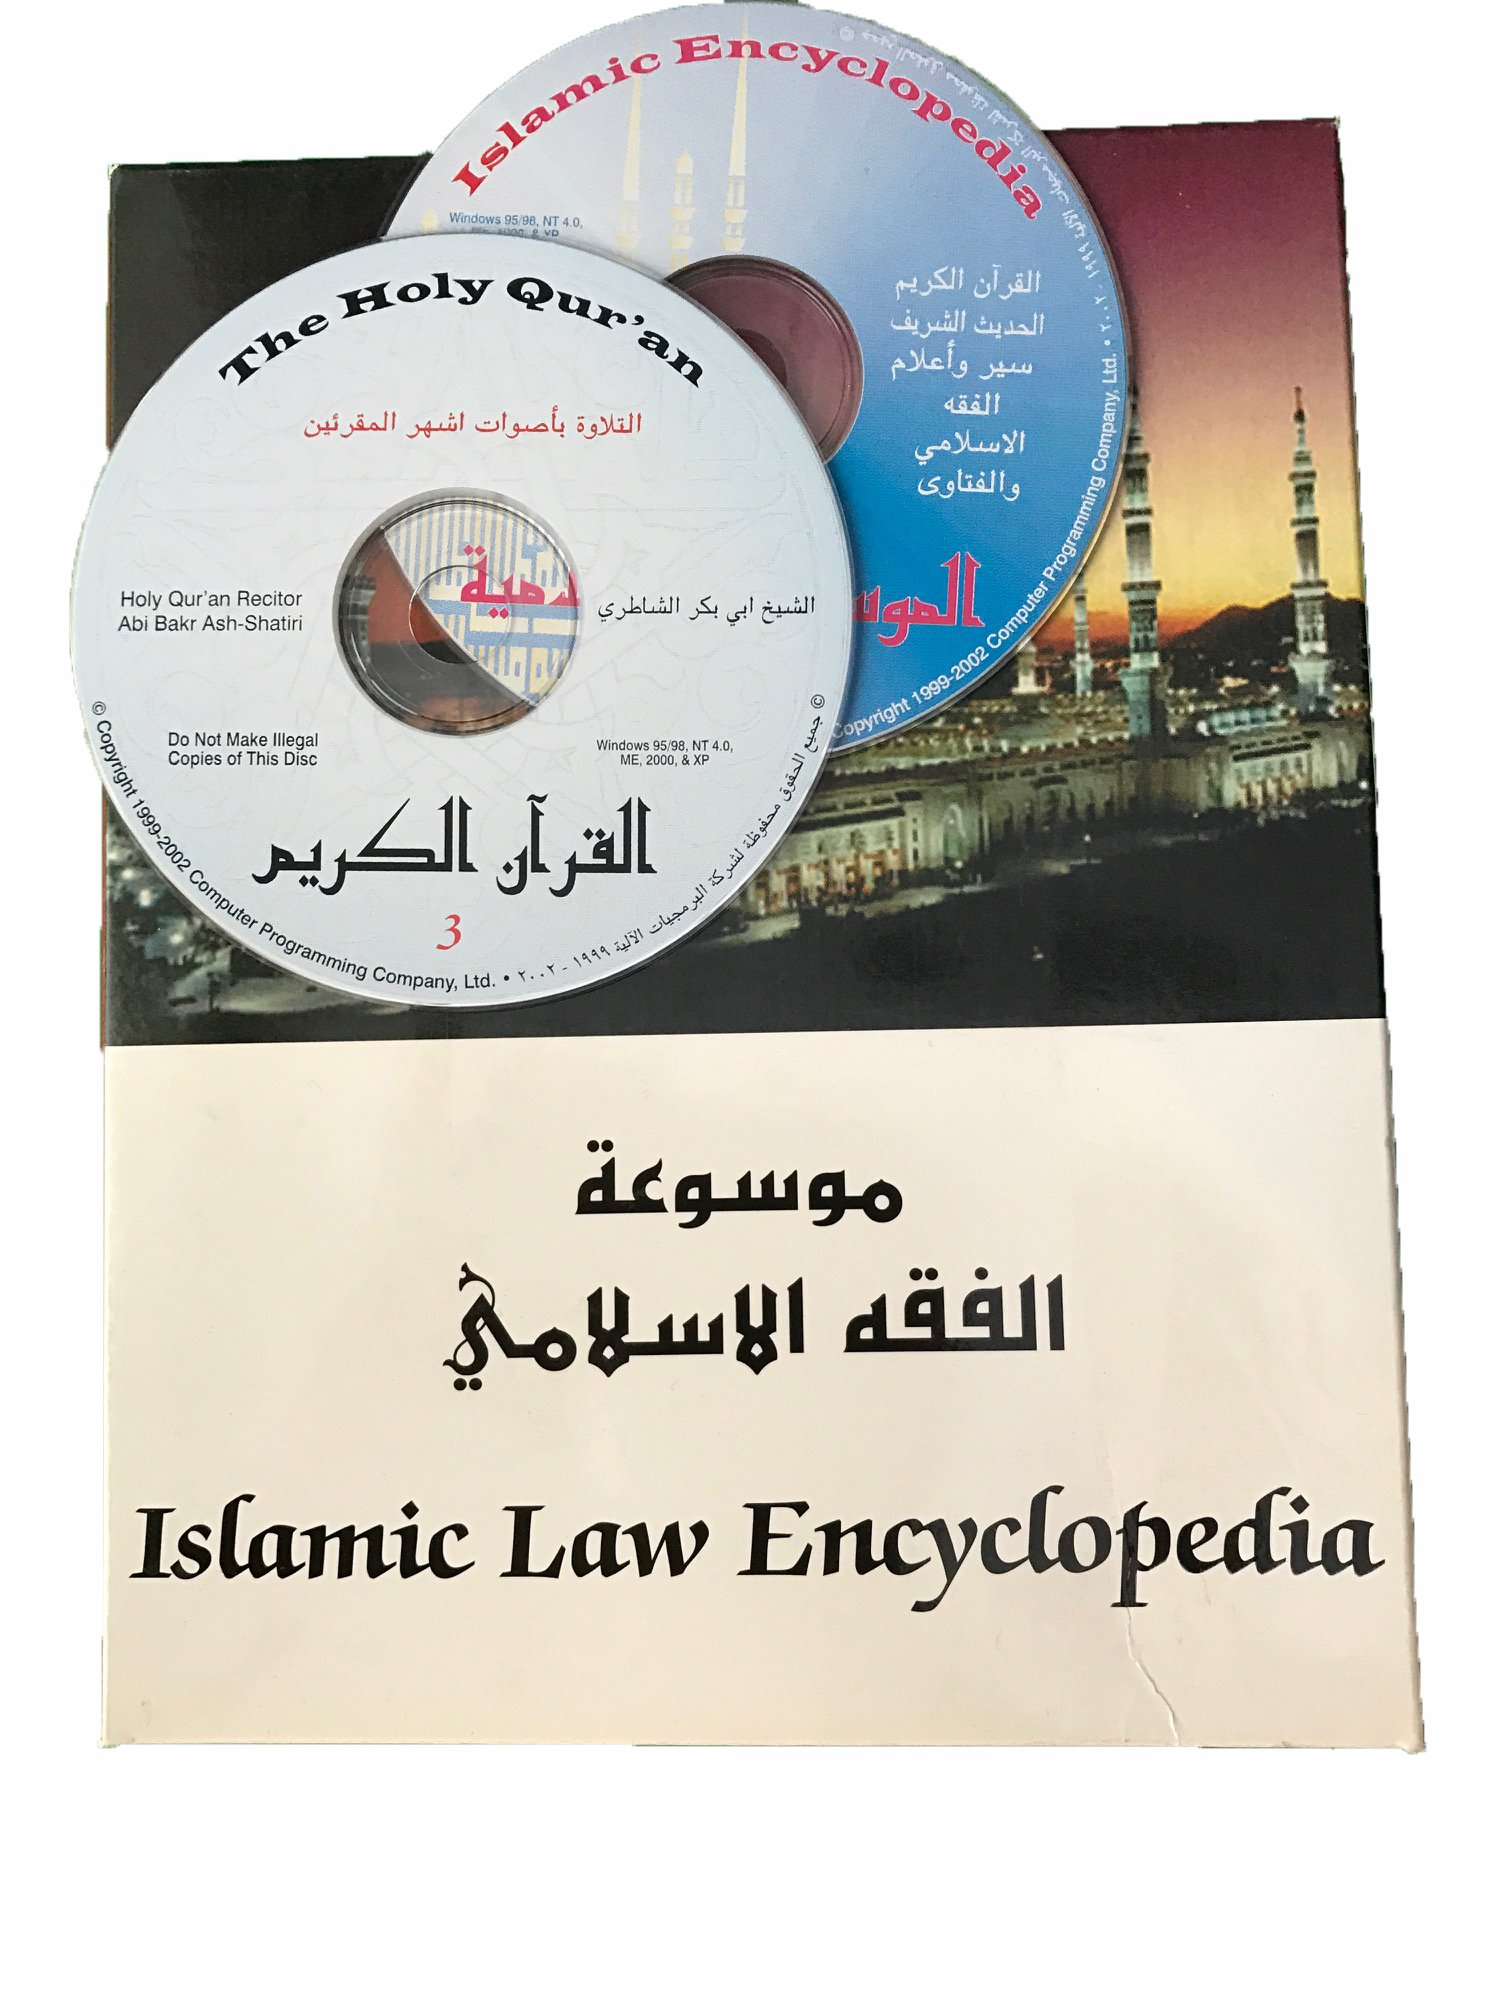 Islamic Law Encyclopedia Program; Learn the Islamic Fiqh. Cross-Reference Cases to The Holy Qur'an or the Noble Traditions. by Islamics